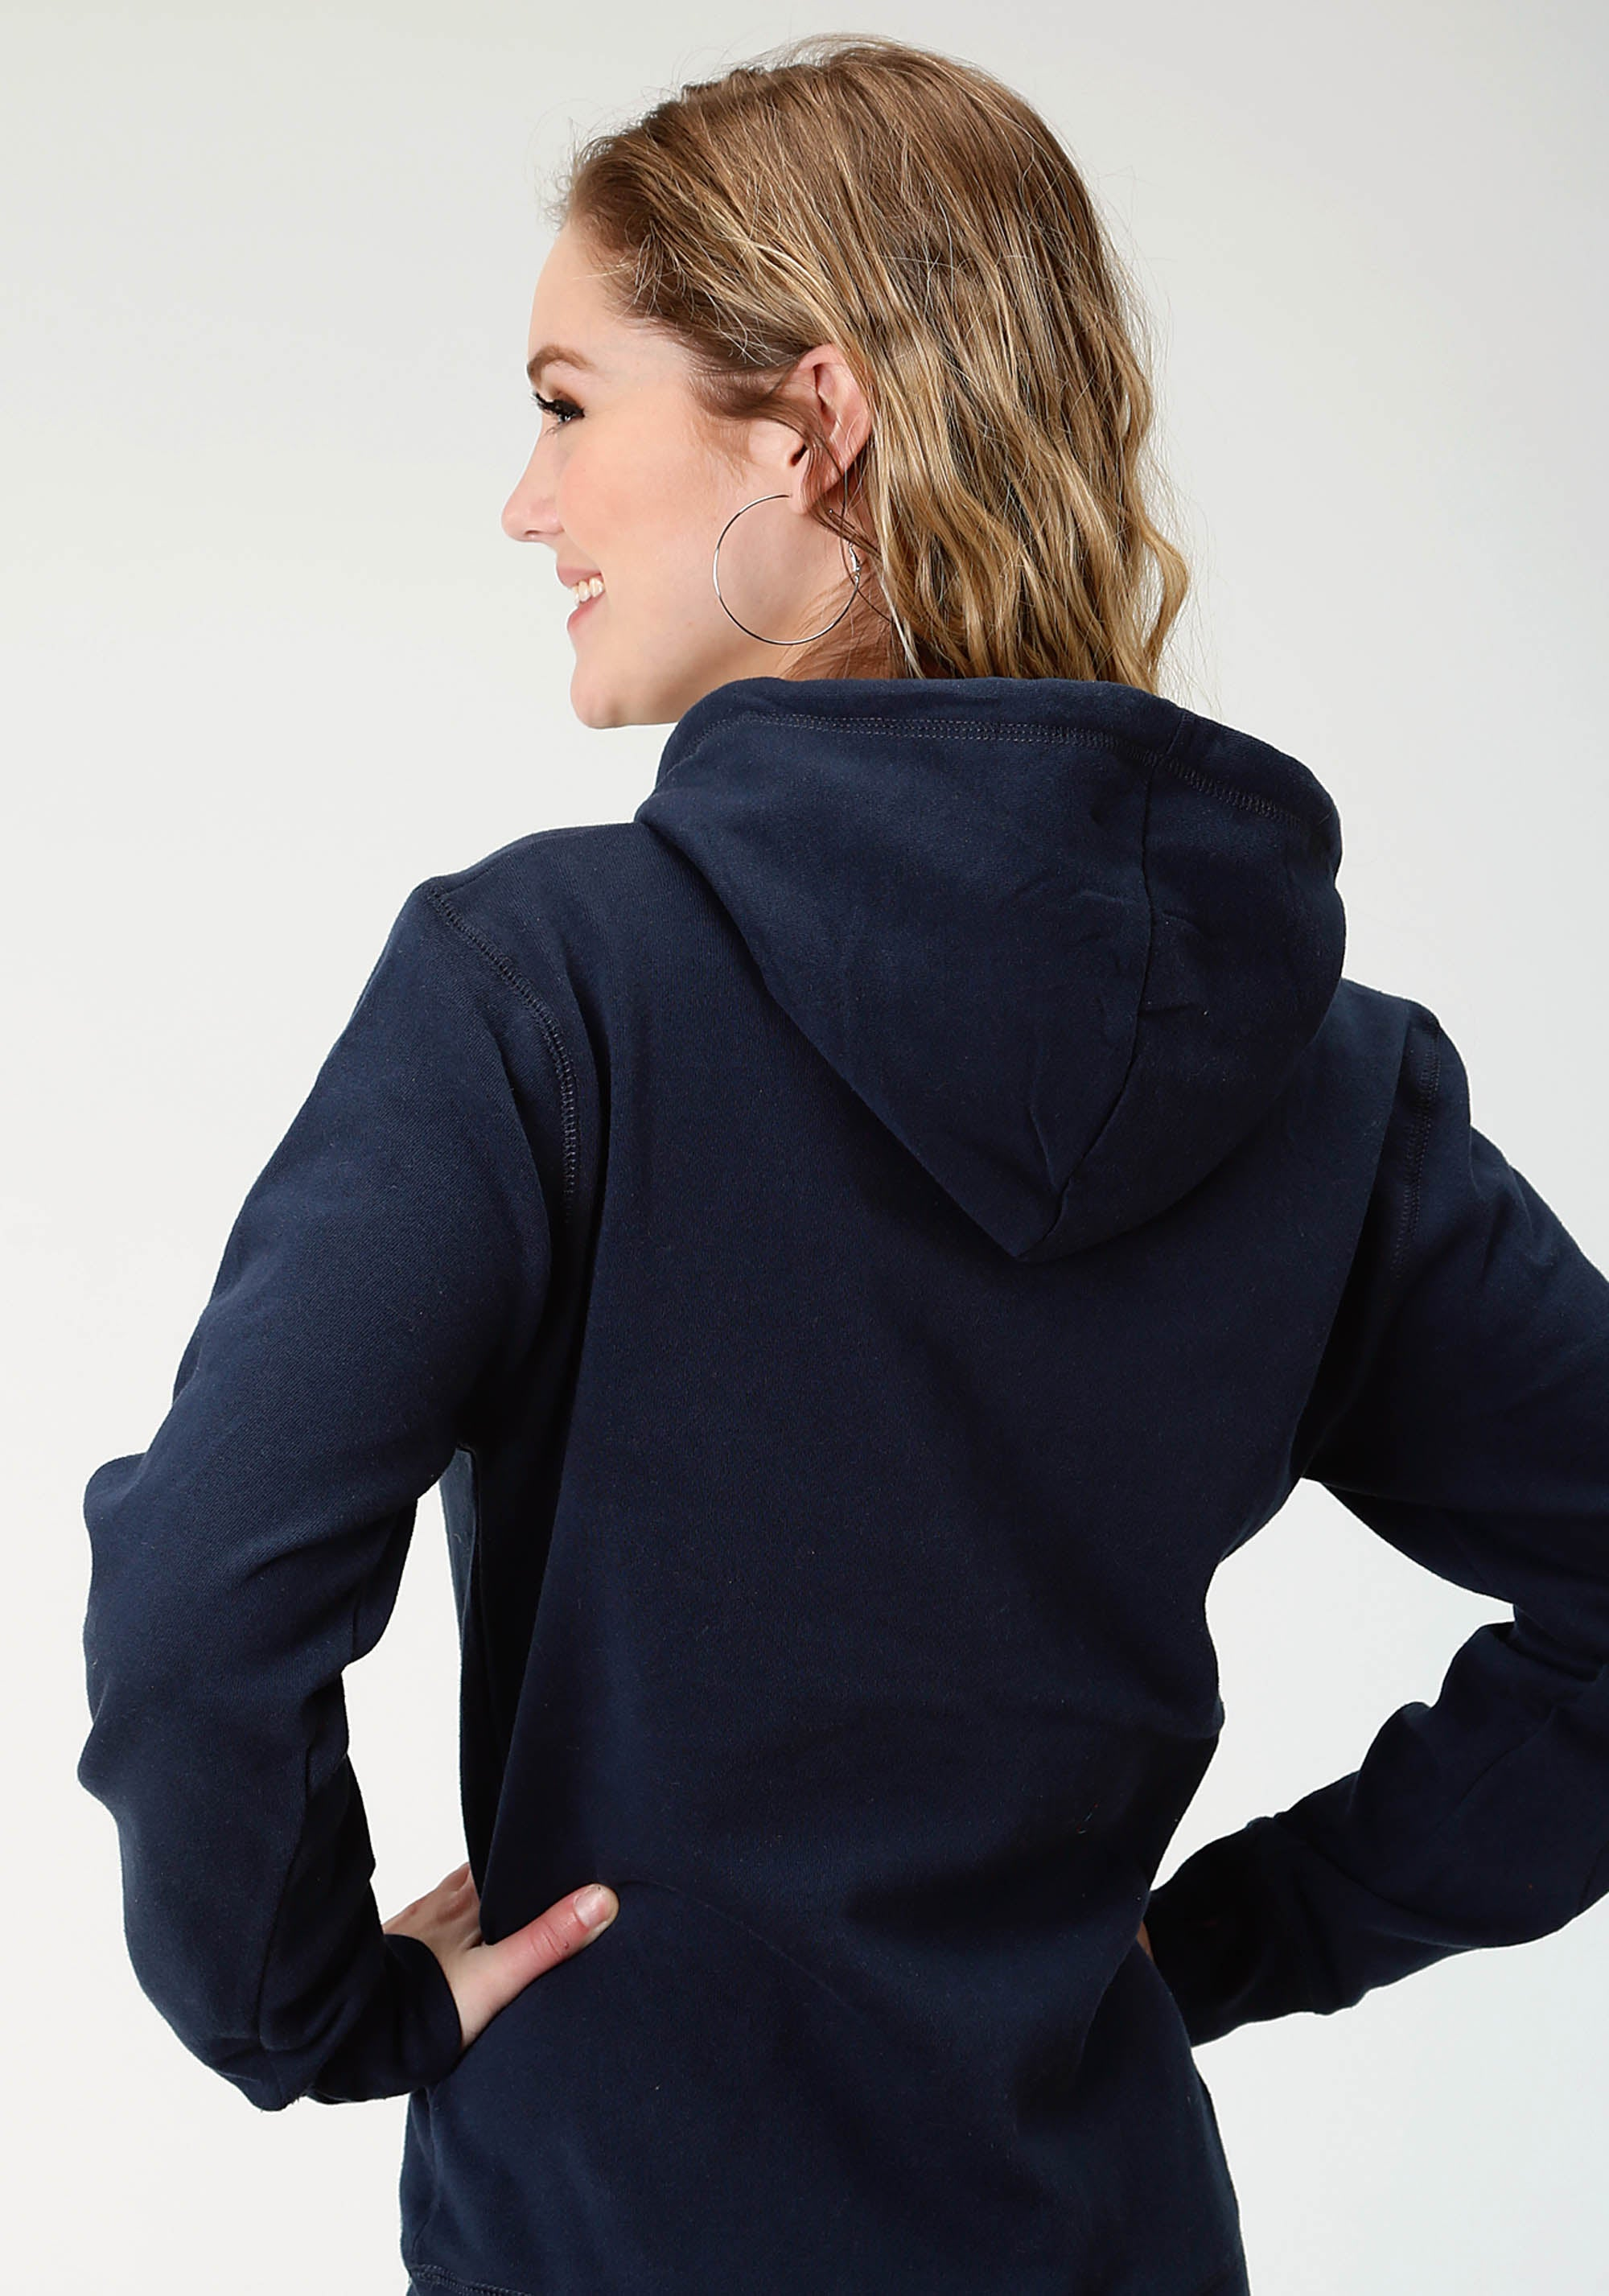 ROPER WOMENS BLUE ROPER ATHLETIC SCRIPT EMB APPLIQUE ROPER LADIES SWEATSHIRT JACKET